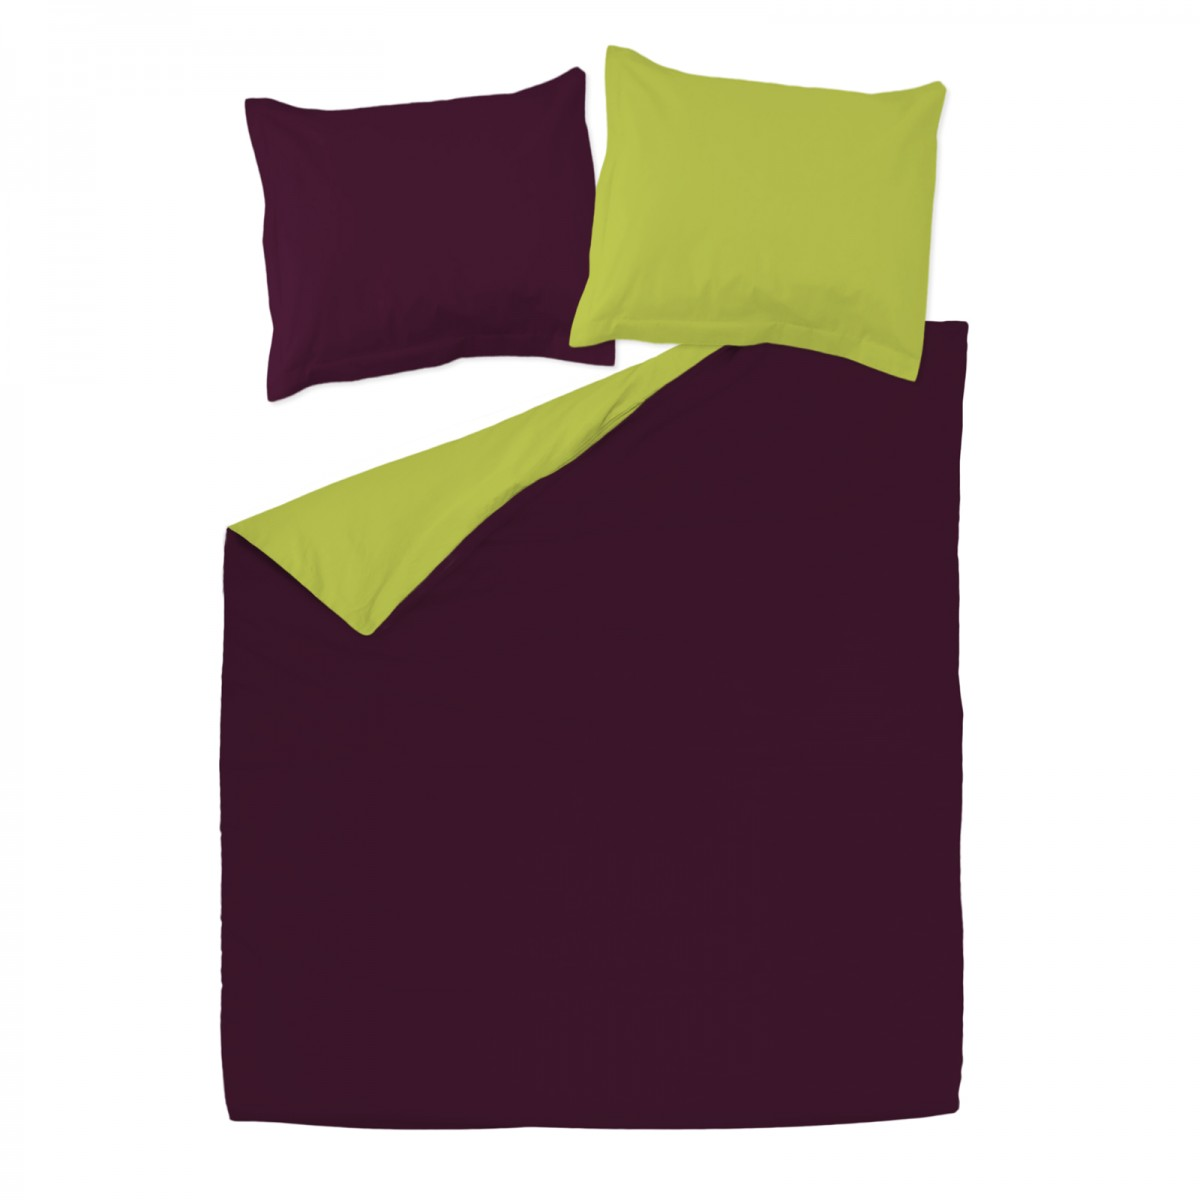 aubergine et vert 100 coton parure de lit r versible. Black Bedroom Furniture Sets. Home Design Ideas